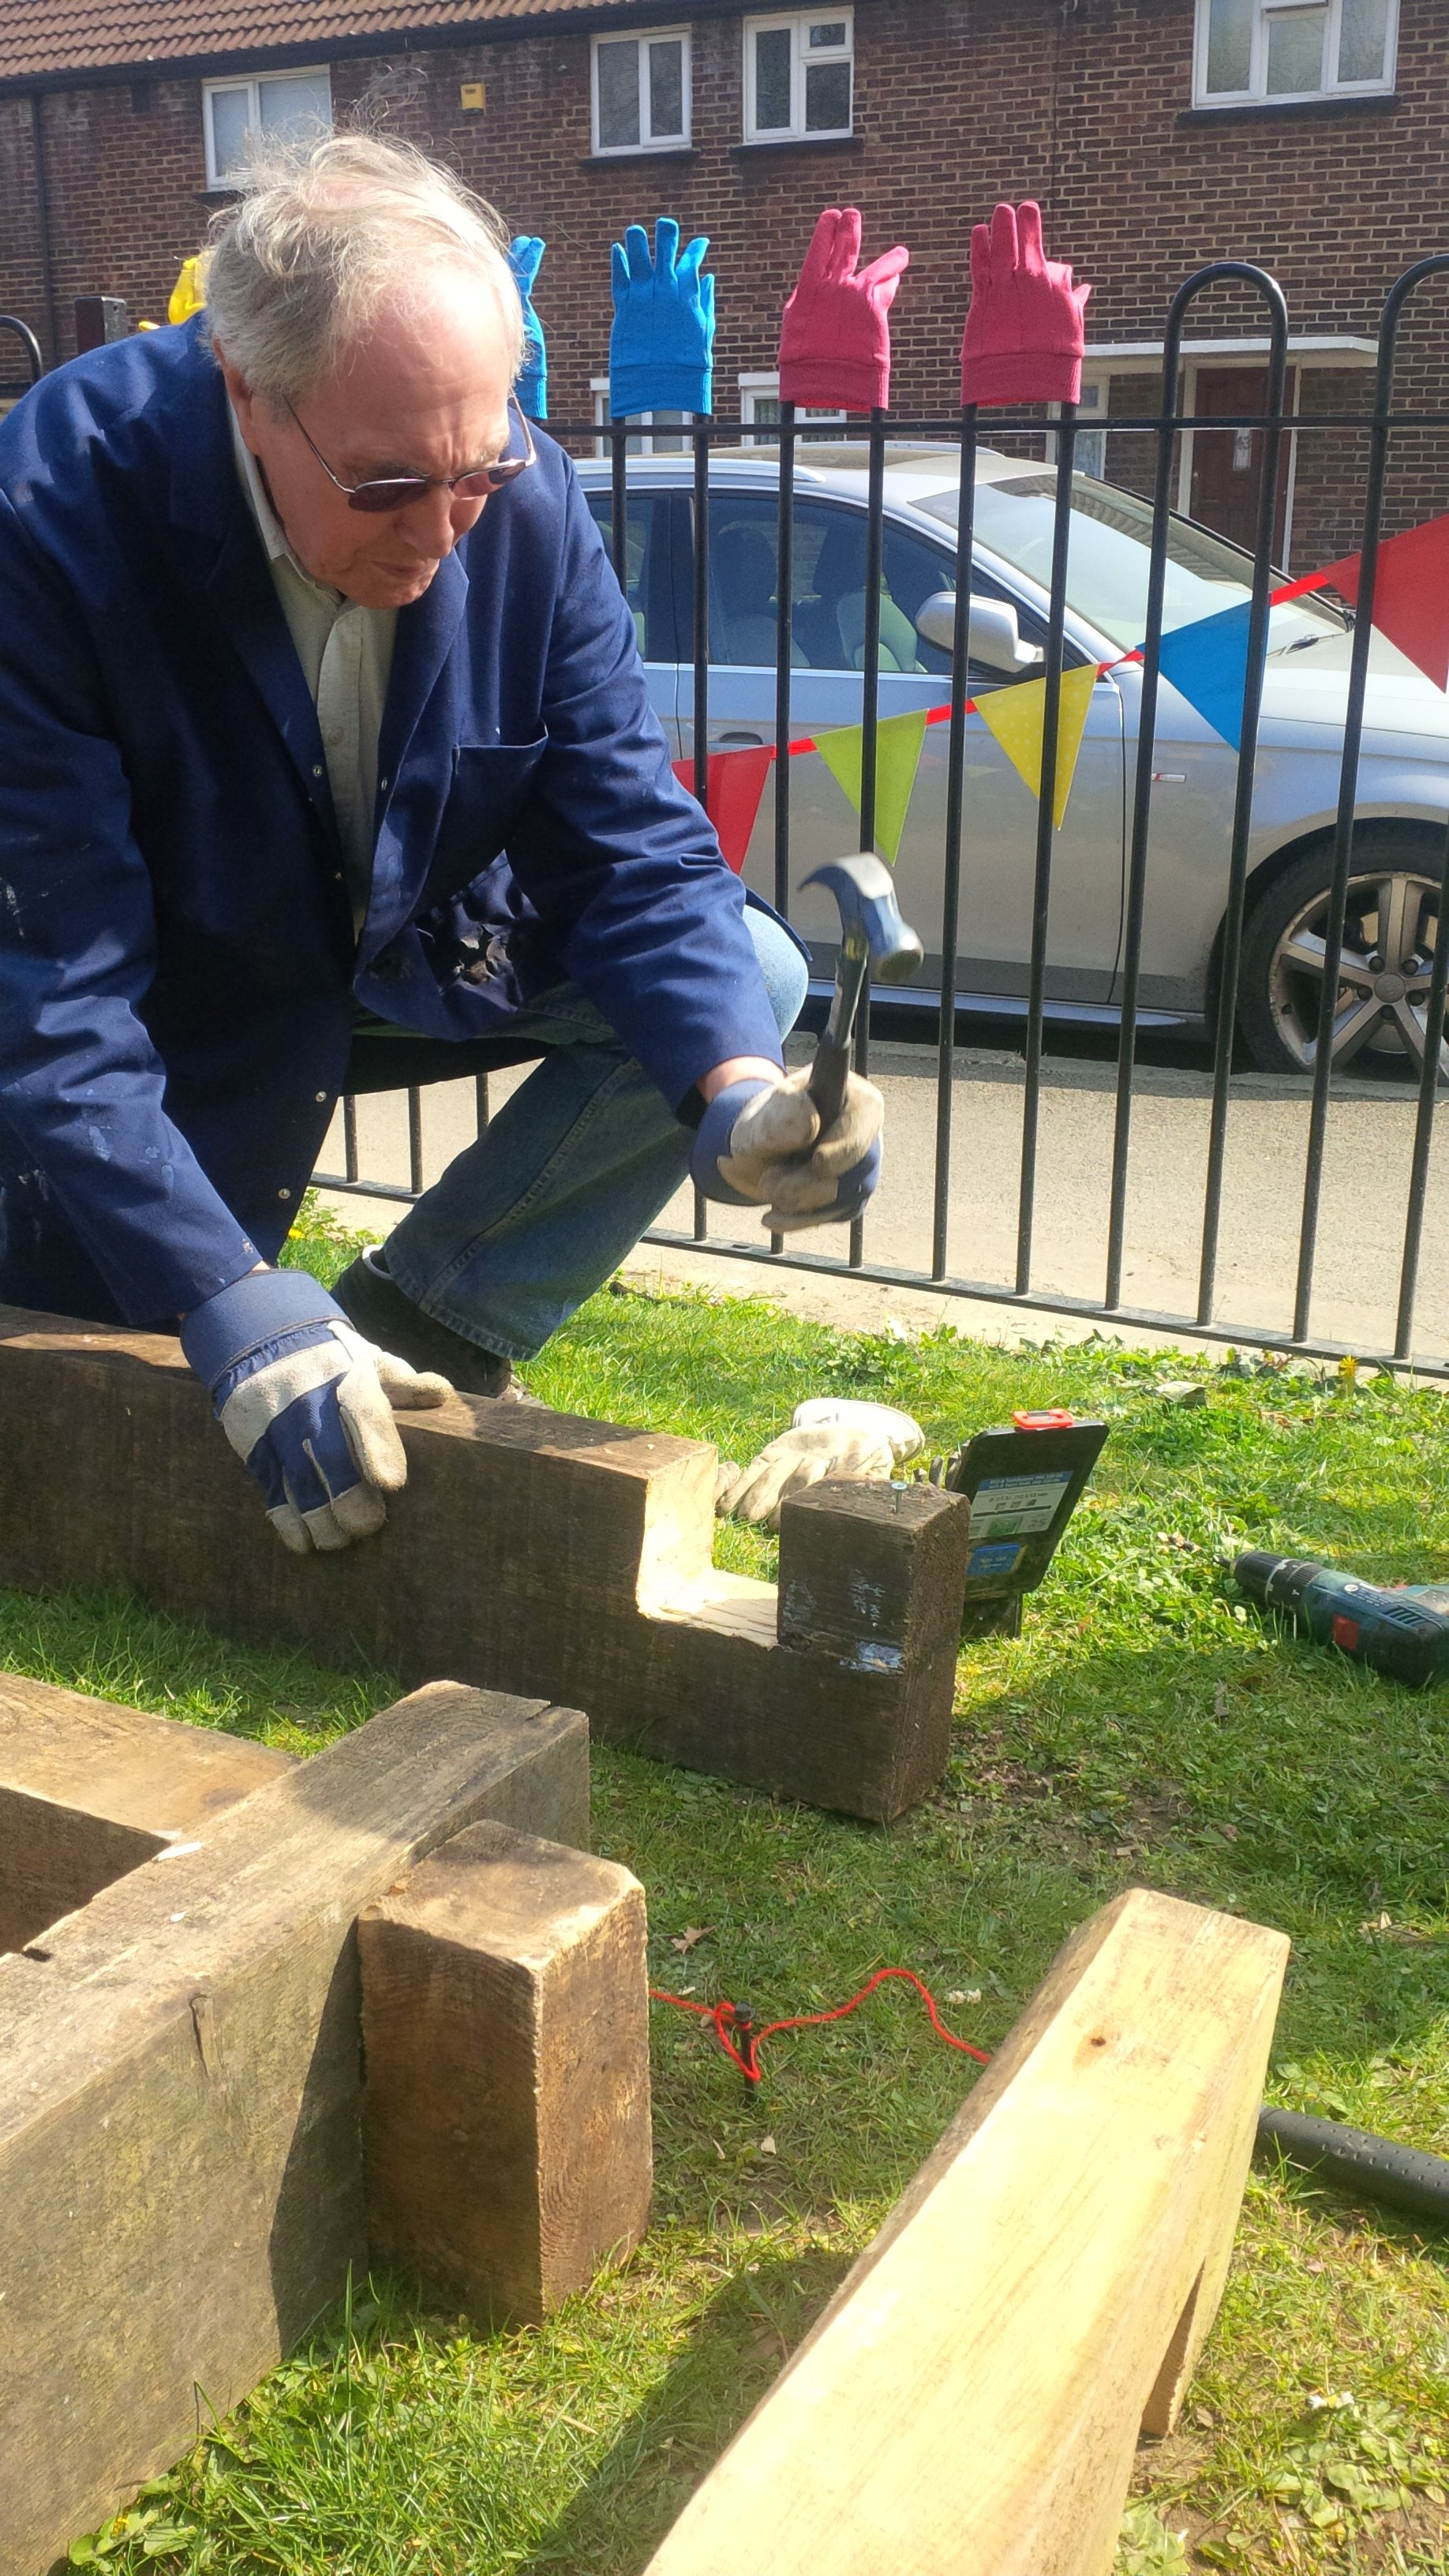 Gardening Project - Build Day/Workshops – 9th April 2015